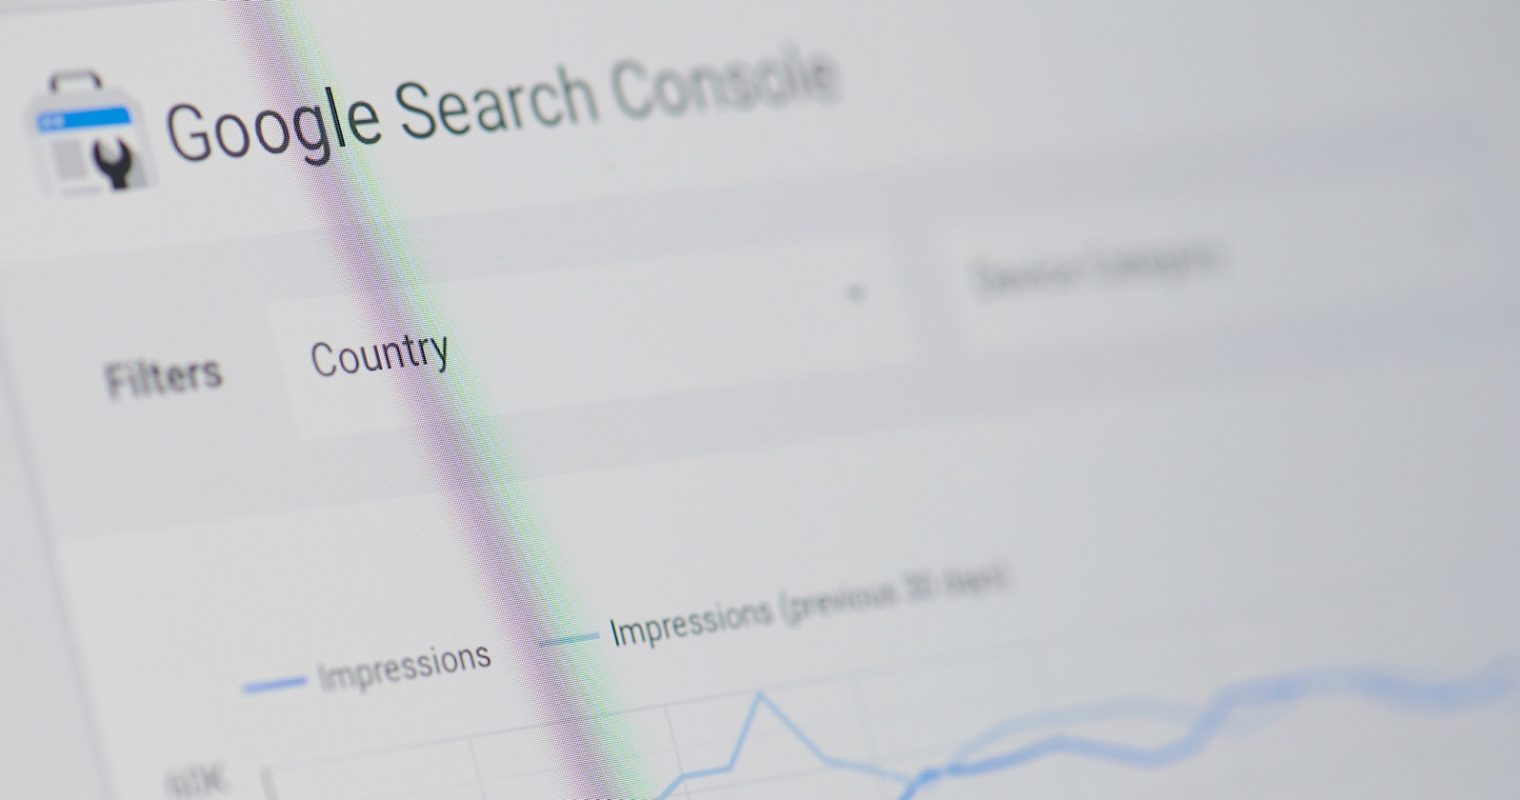 Google Search Console Shows New Image Search Data for AMP Pages